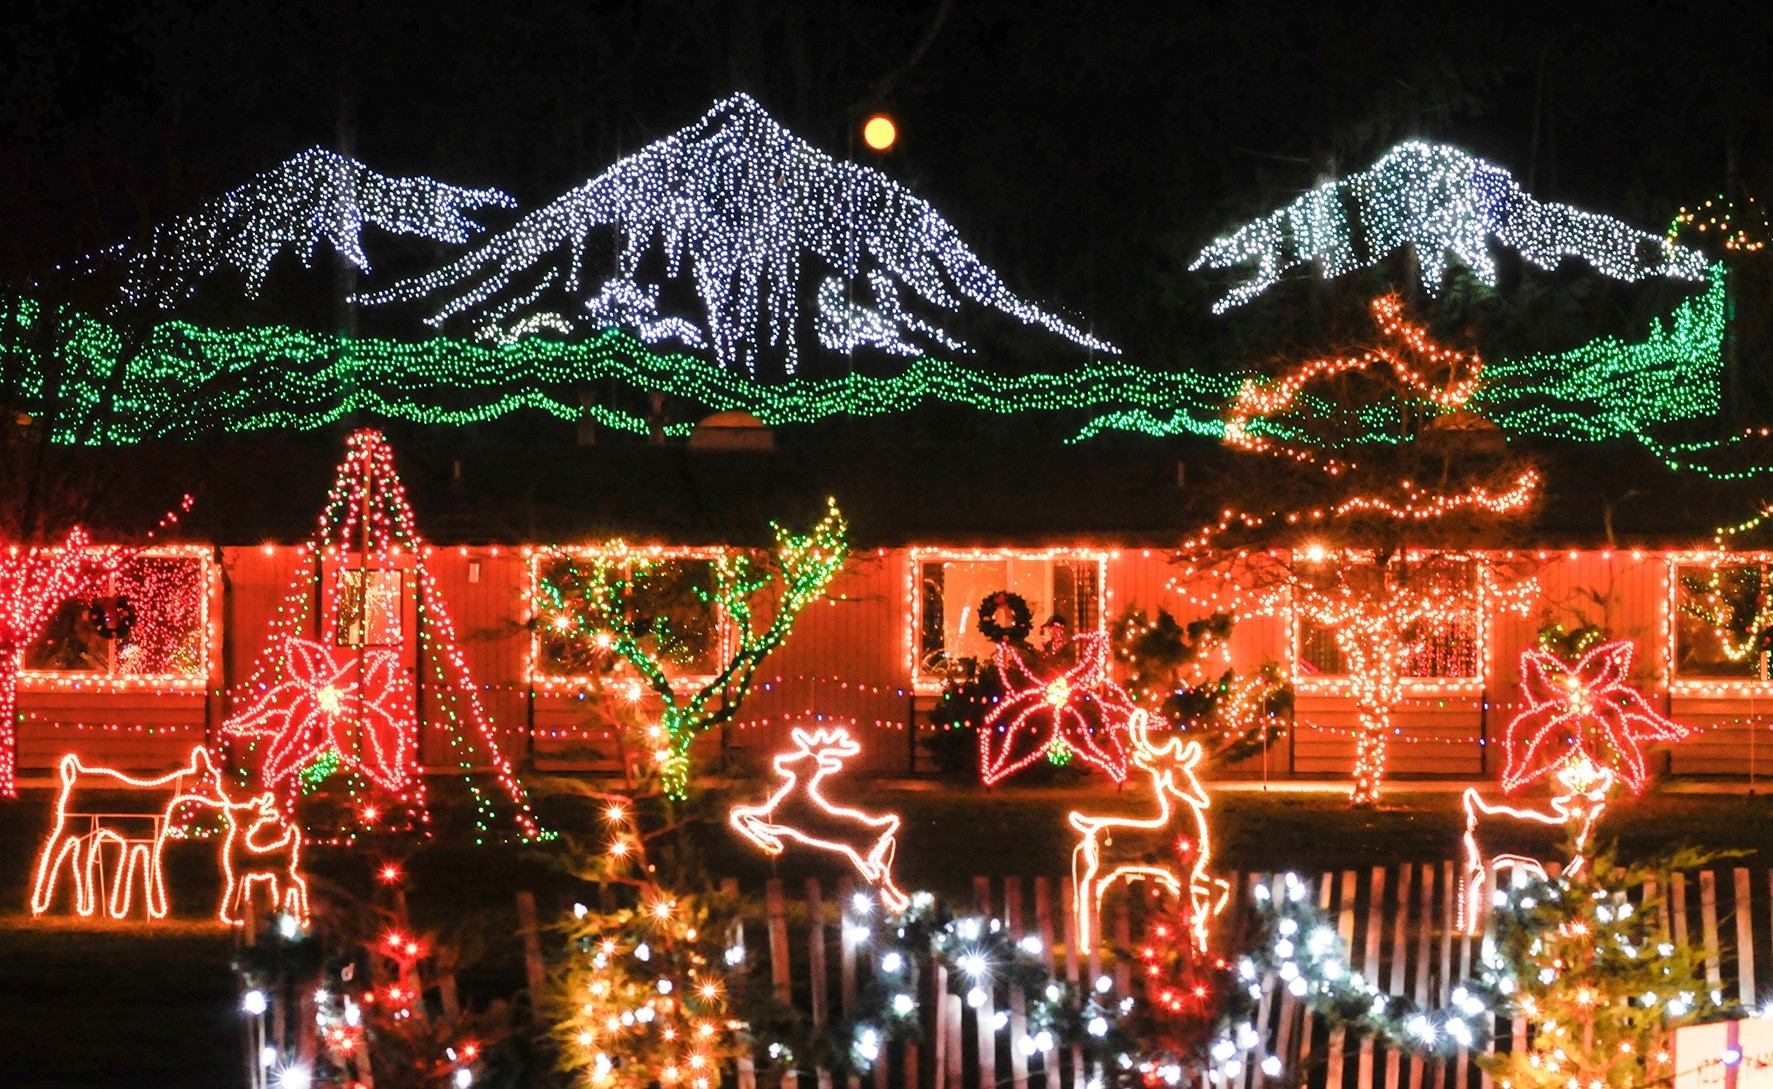 Day Trip Discoveries: Get in holiday spirit at The Lights ...